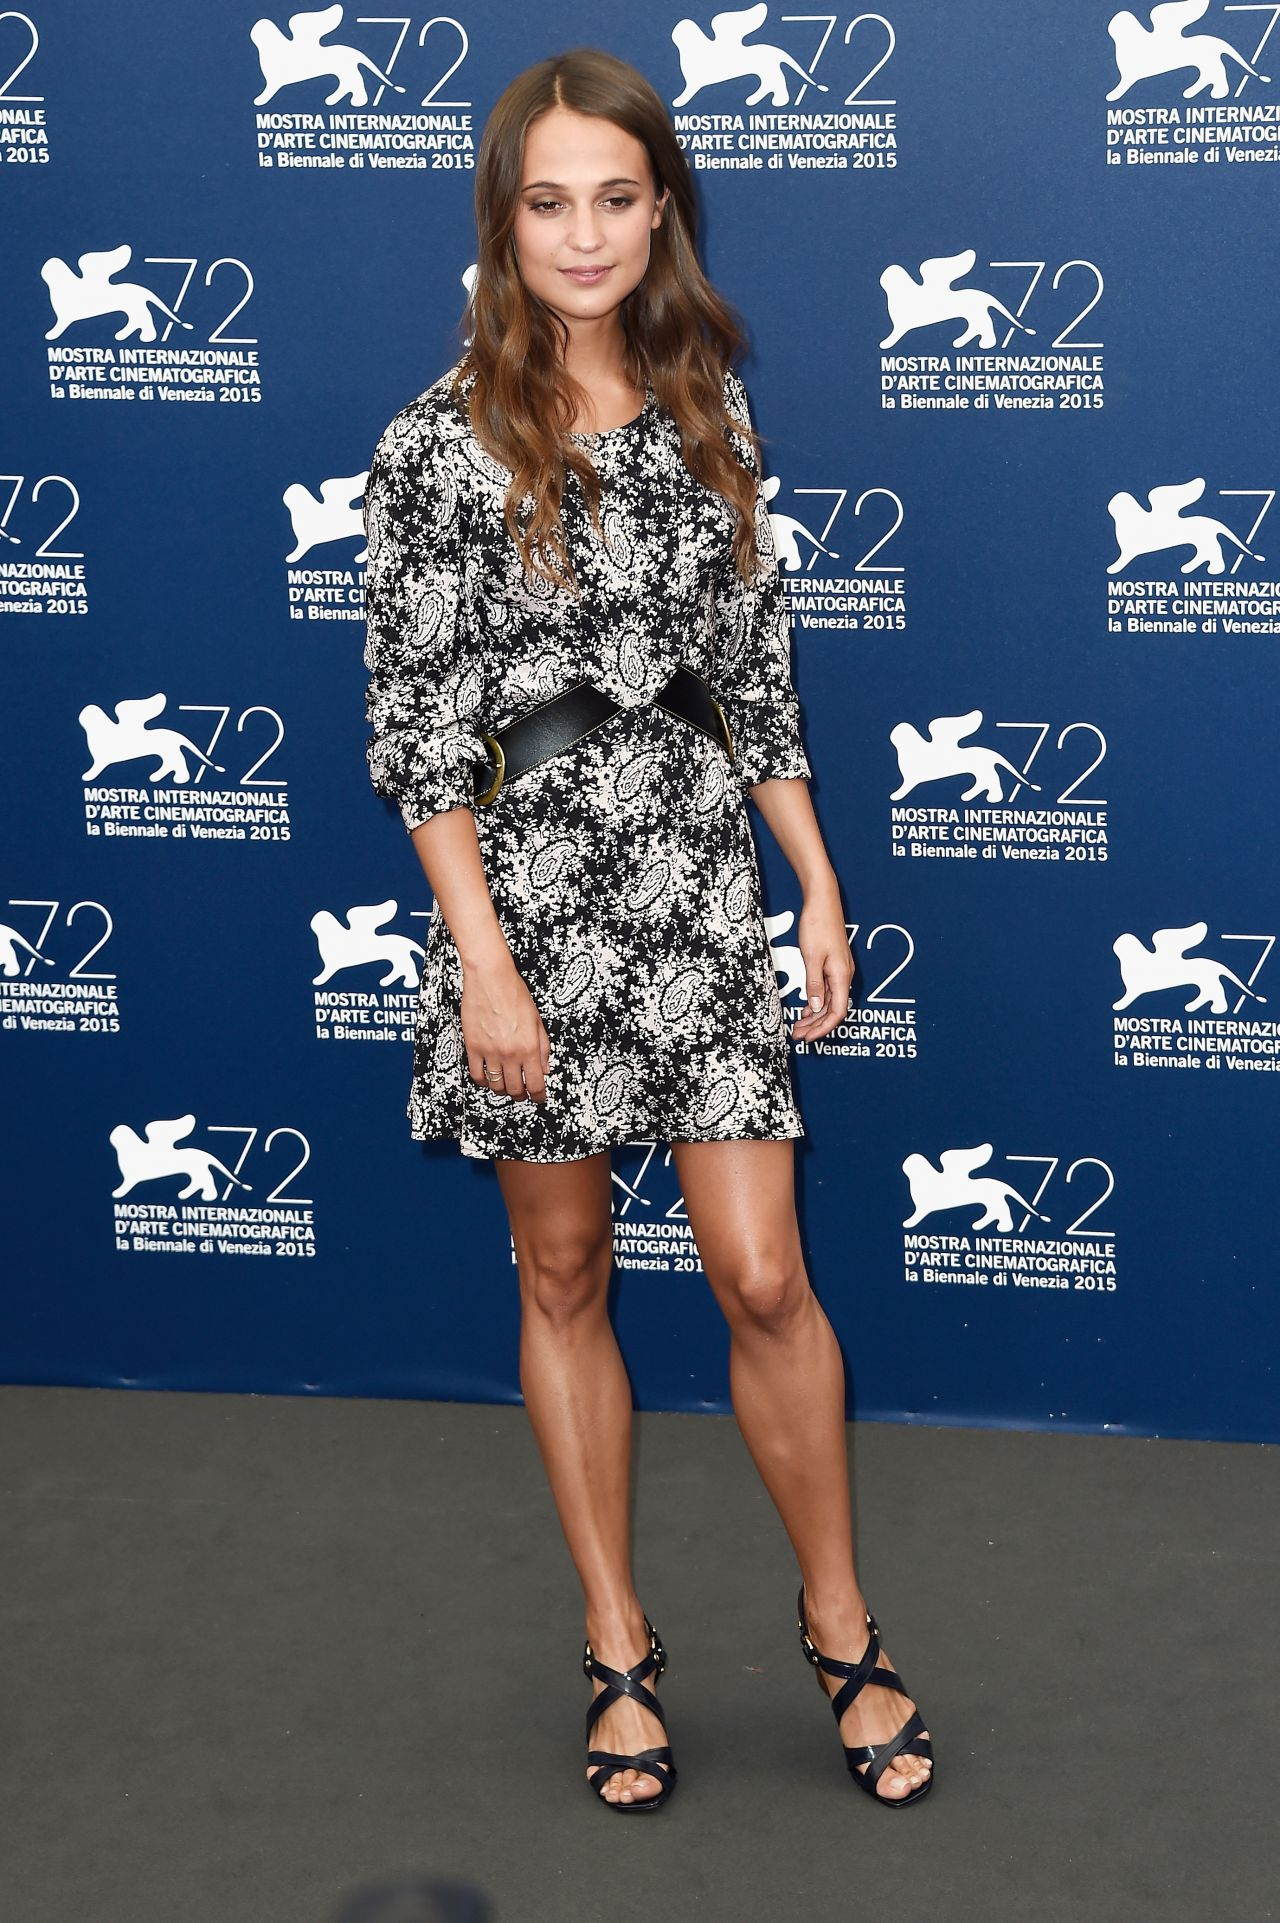 Alicia Vikander The Danish Girl Photocall 72nd